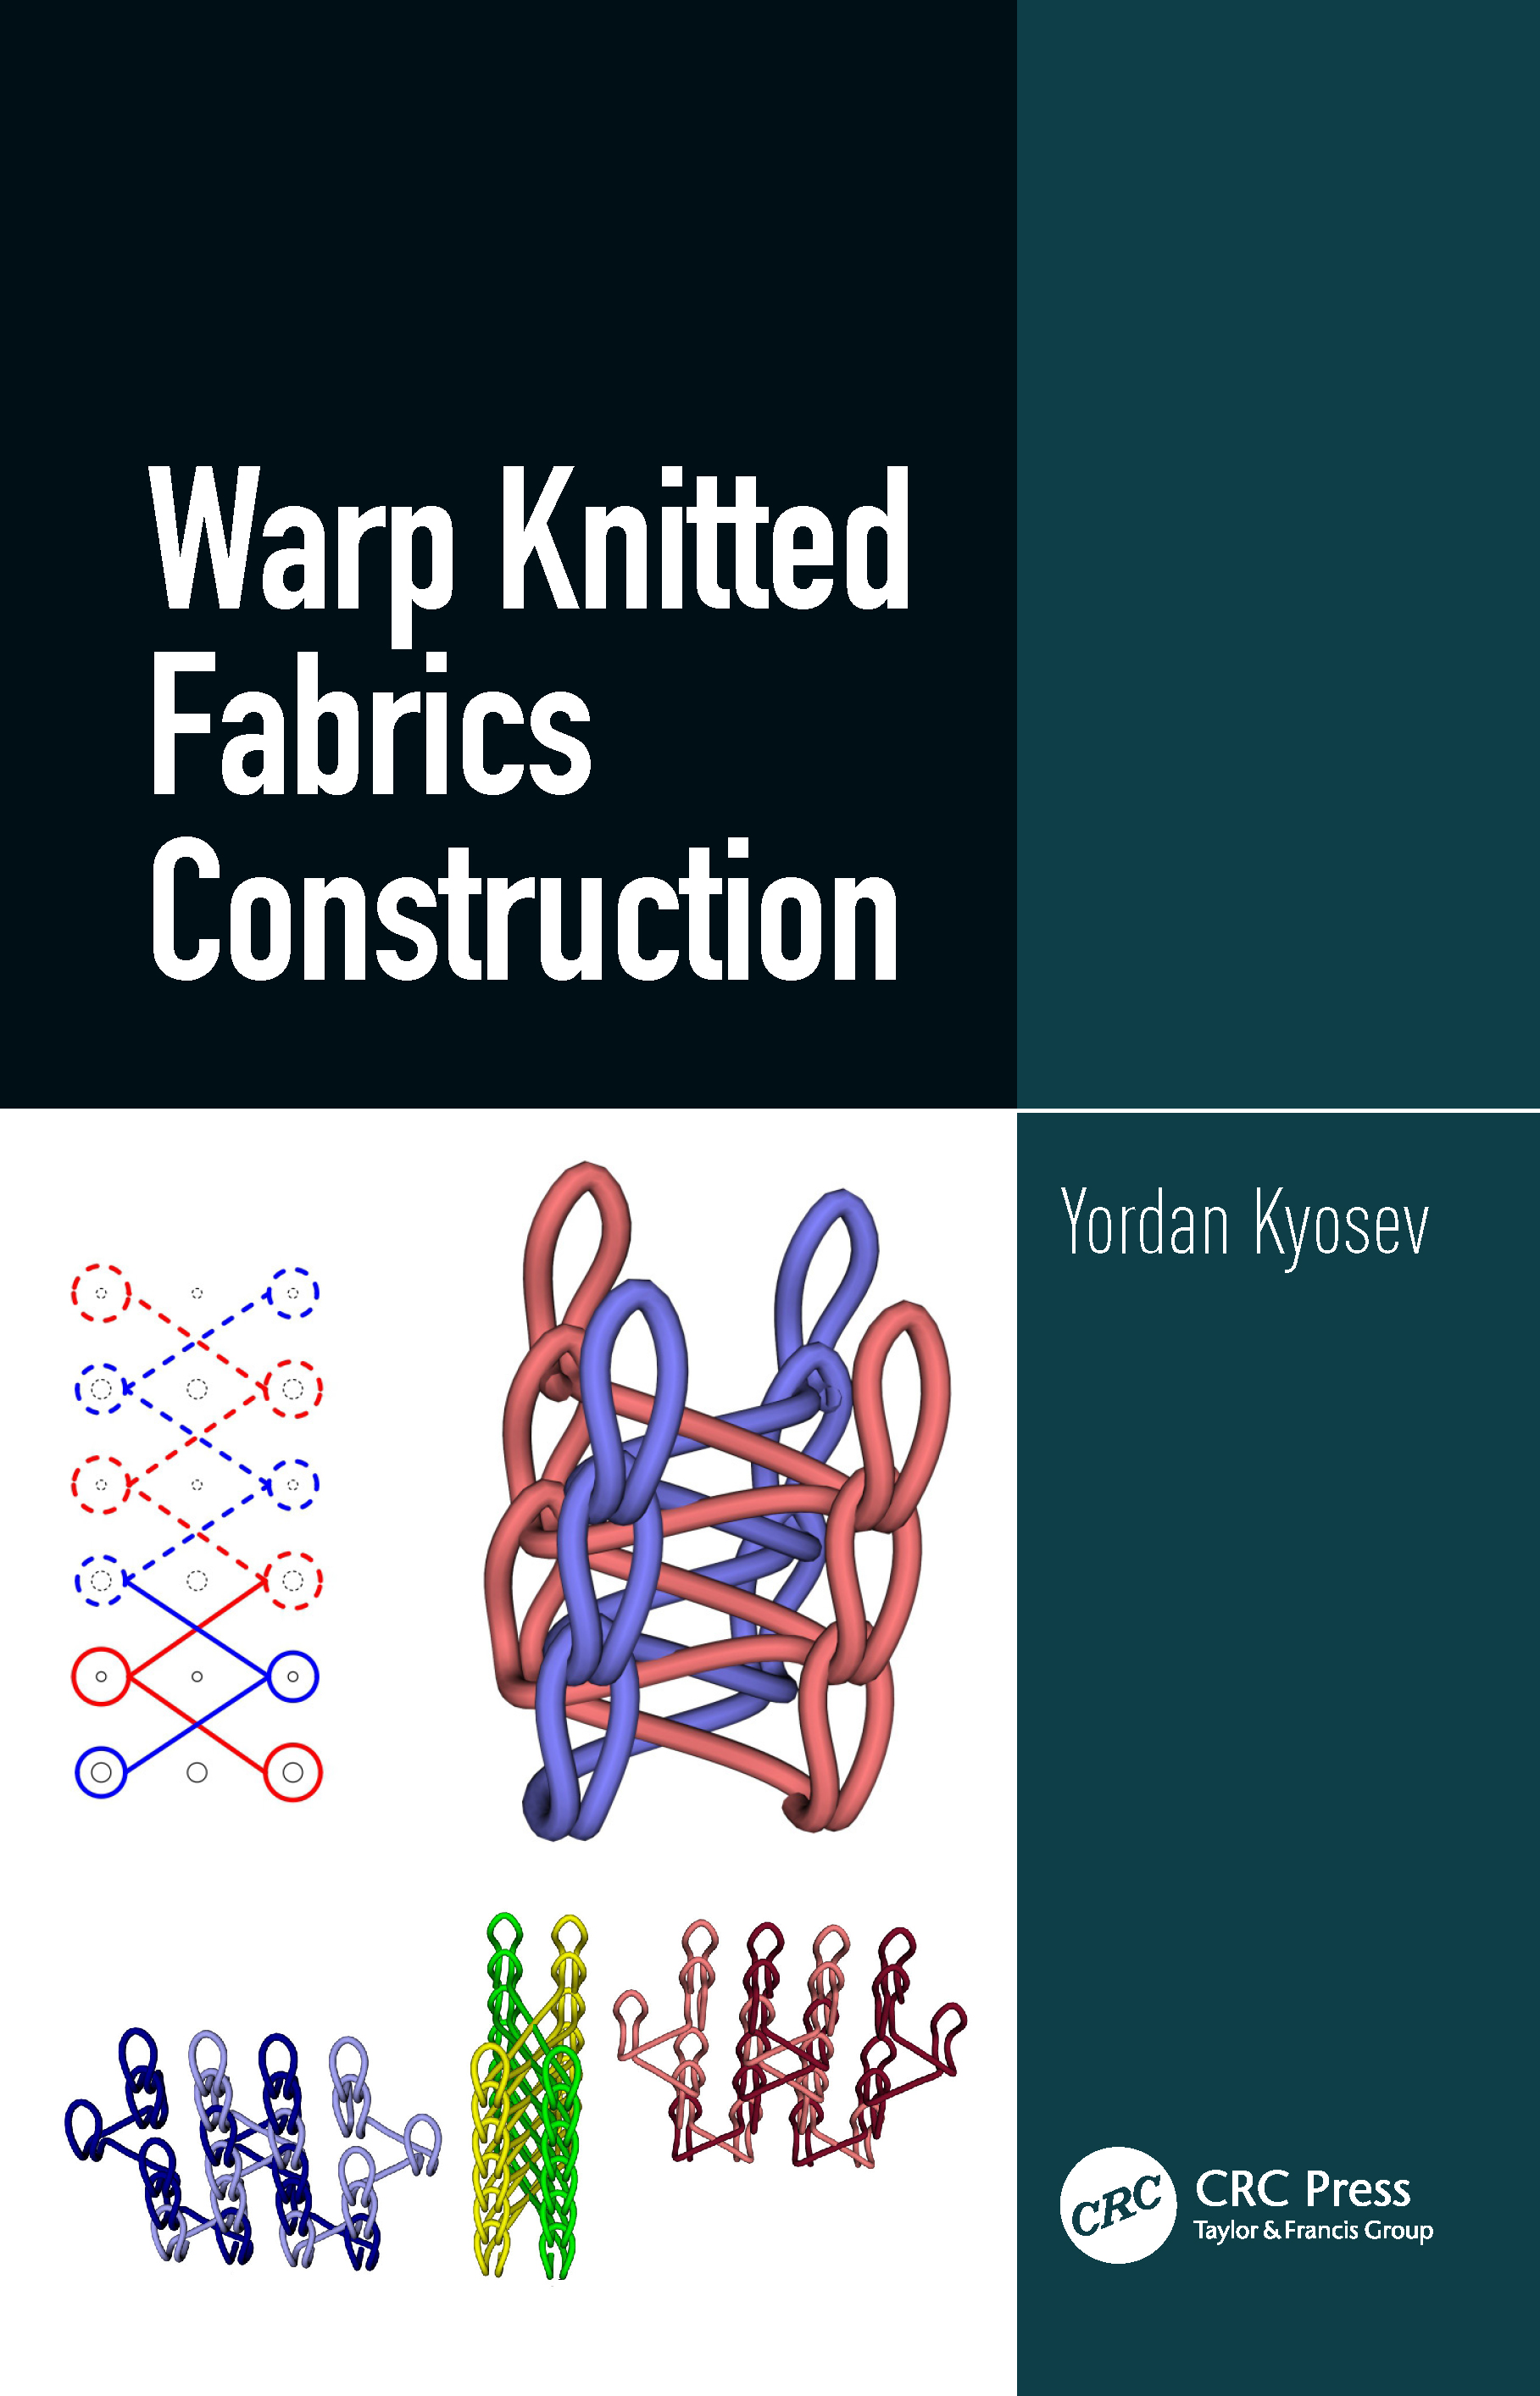 Warp Knitted Fabrics Construction book cover